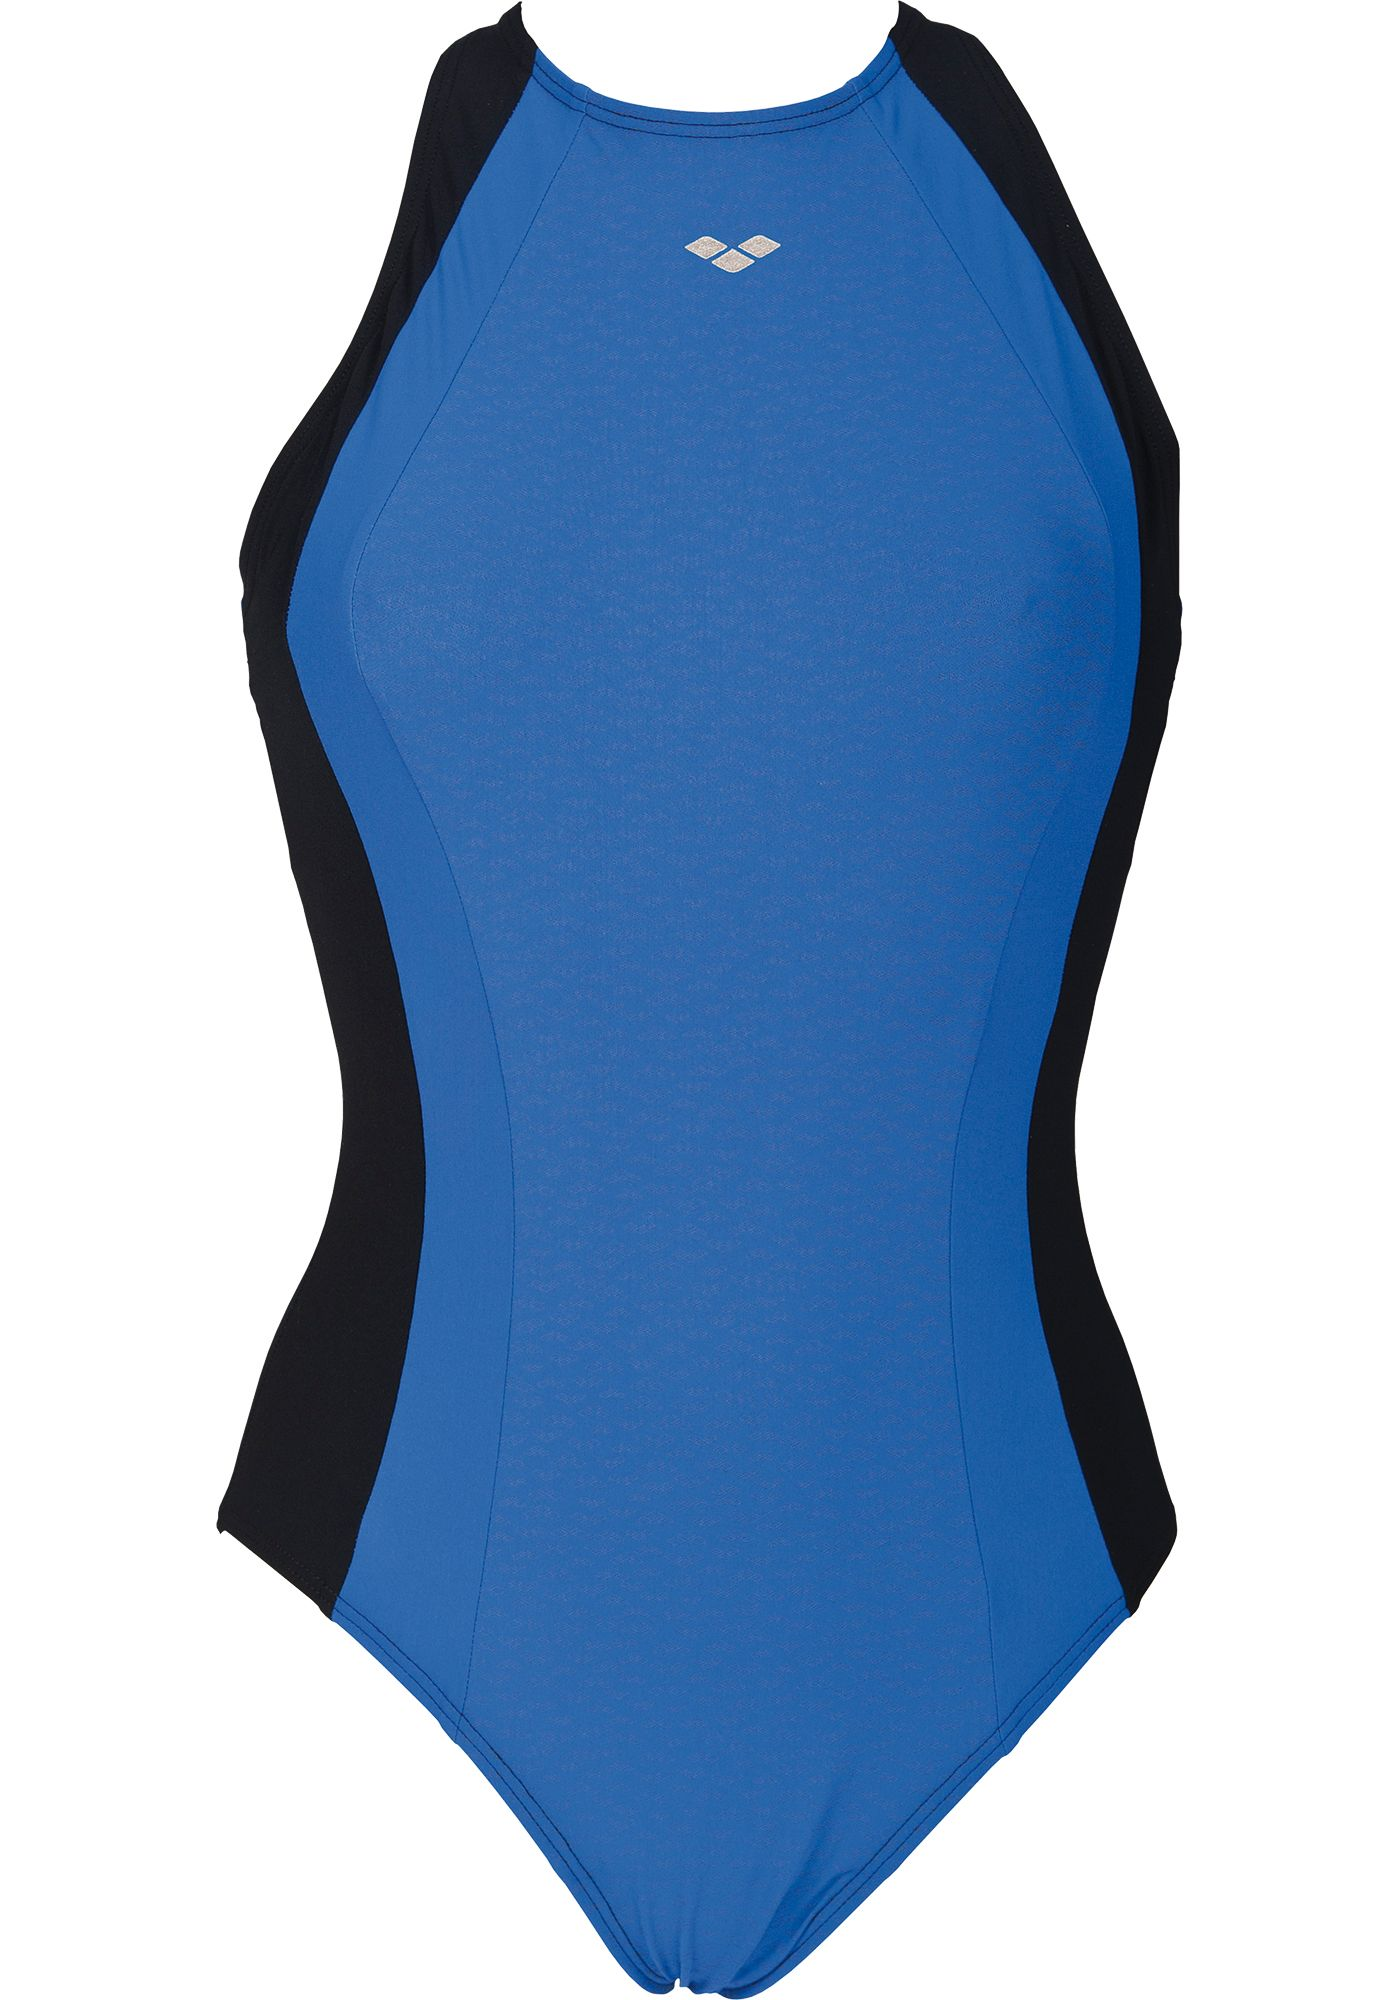 arena Women's Agate Embrace Crossback One Piece Swimsuit